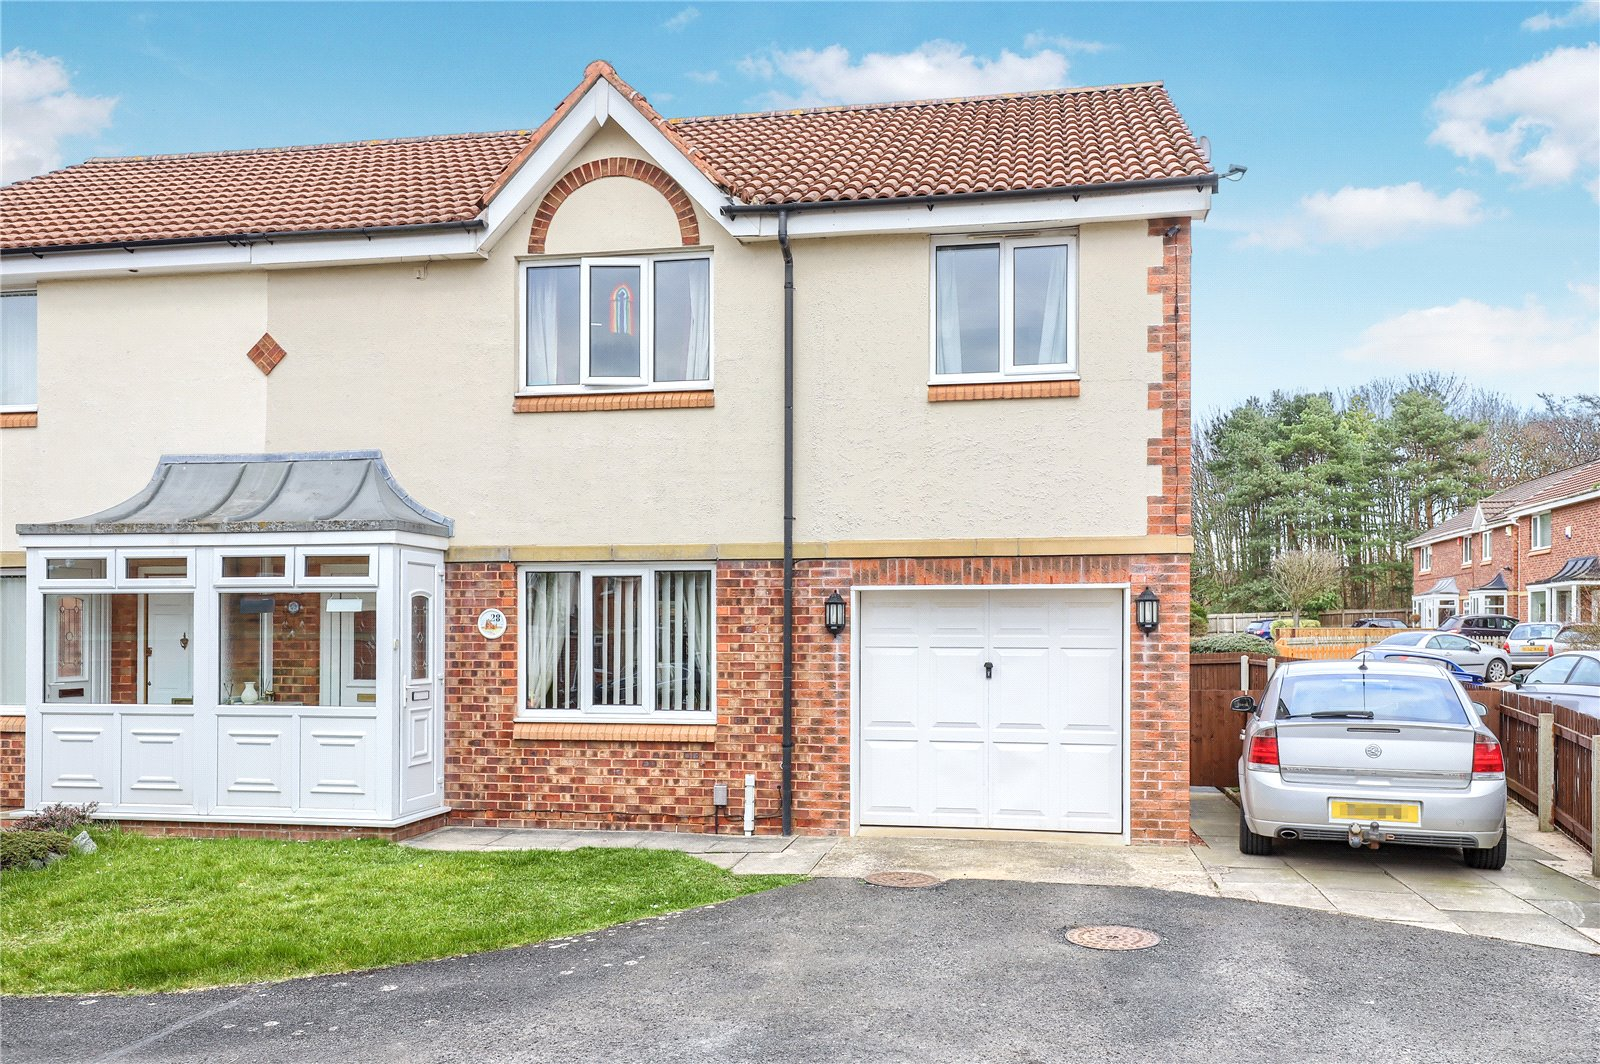 3 bed house for sale in Lynmouth Close, Hemlington 1